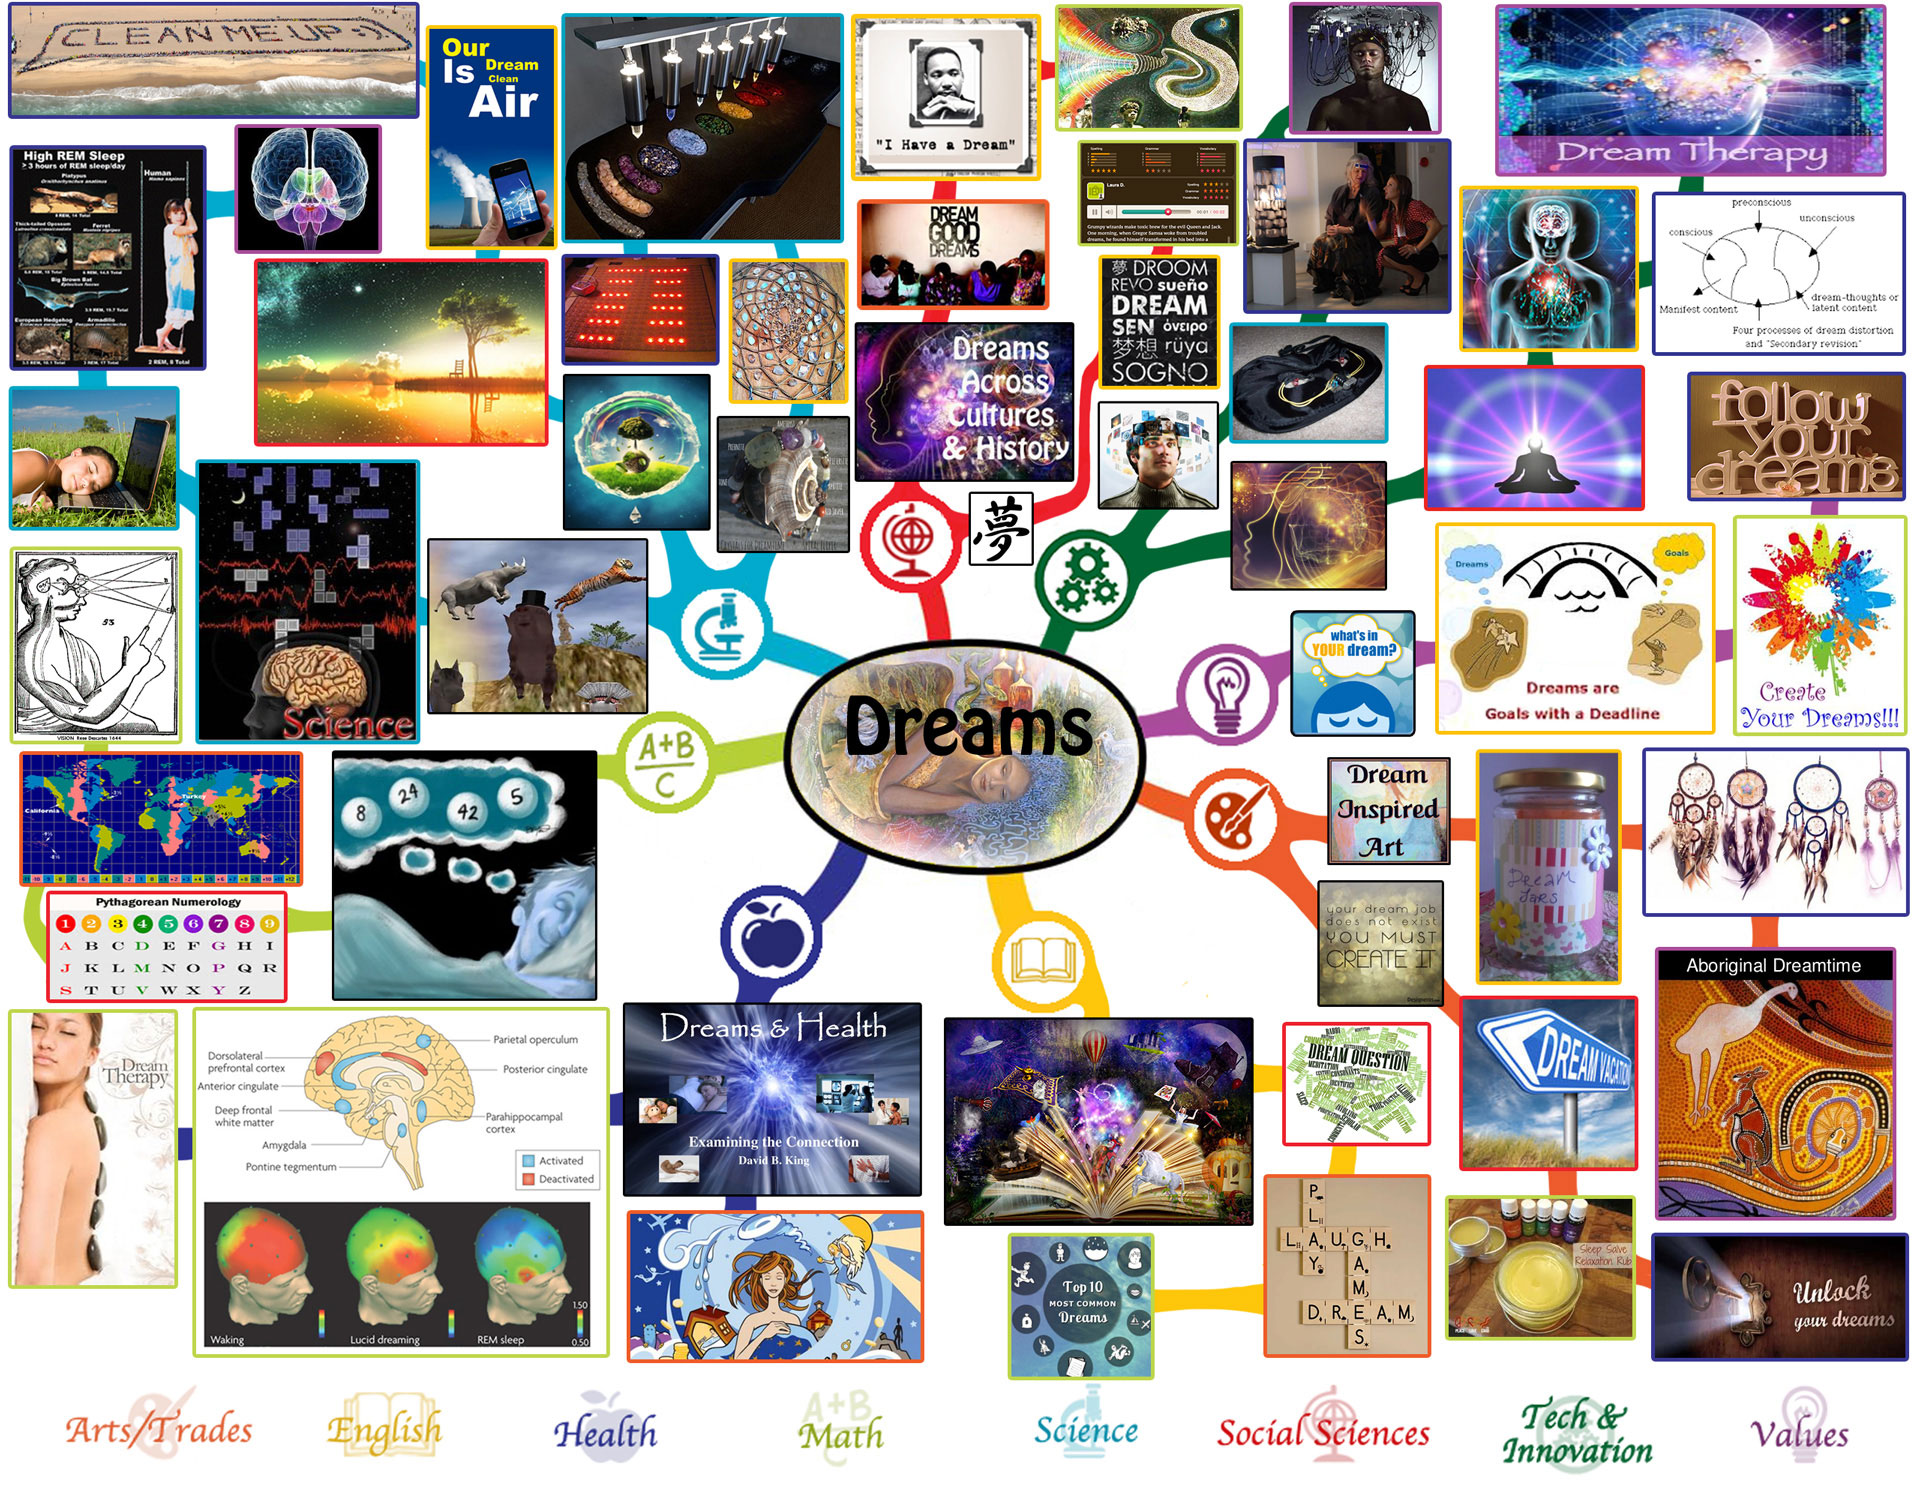 If the world were a village of 100 people lesson plan - Lesson Plan Mindmap For Dreams Click To Enlarge